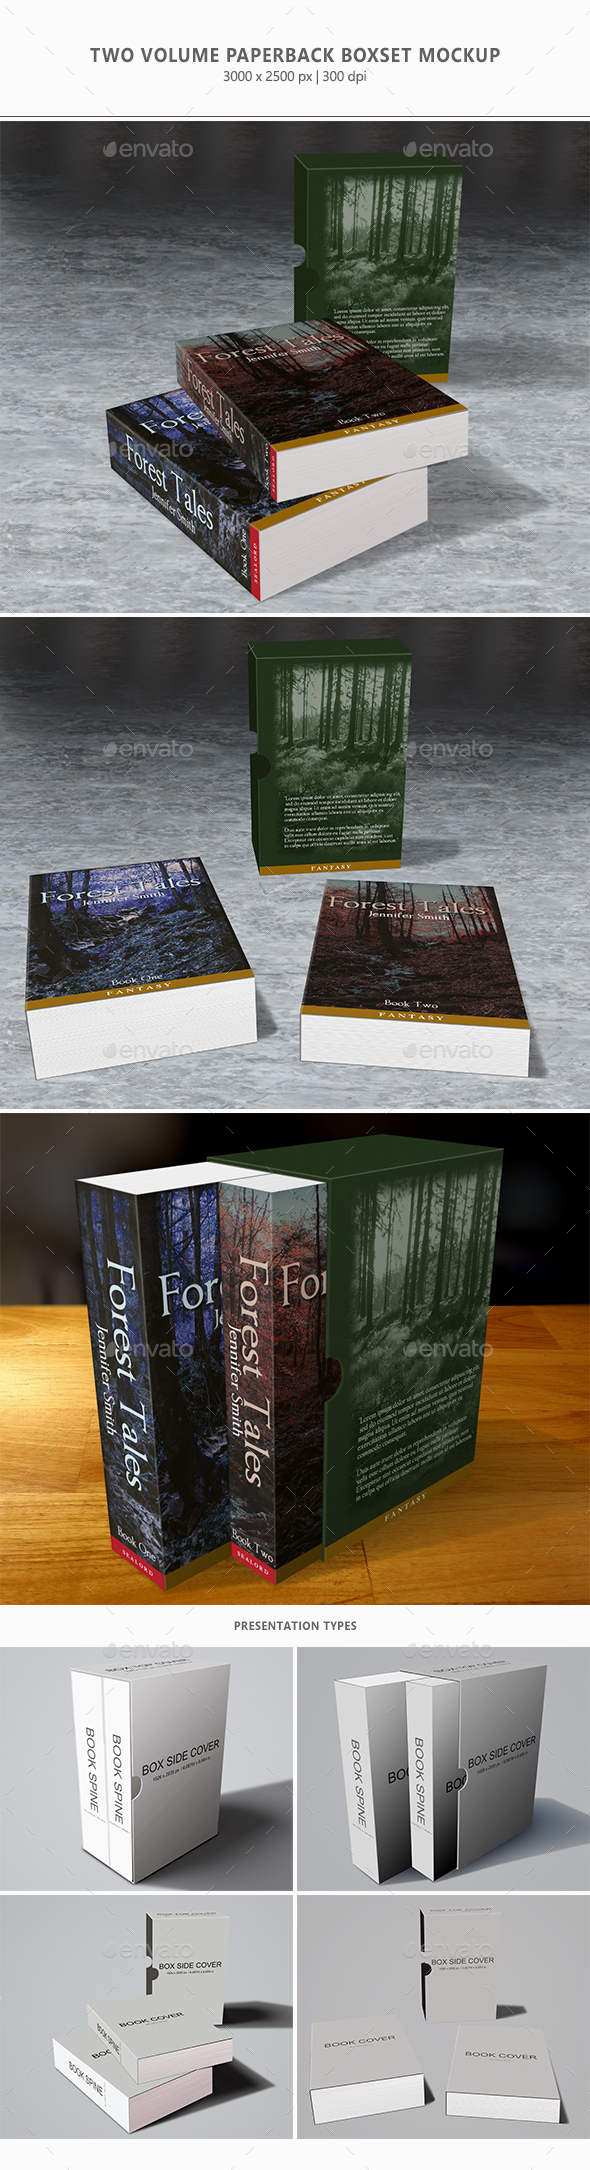 2 Volume Paperback Boxset Mock-up - Books Print